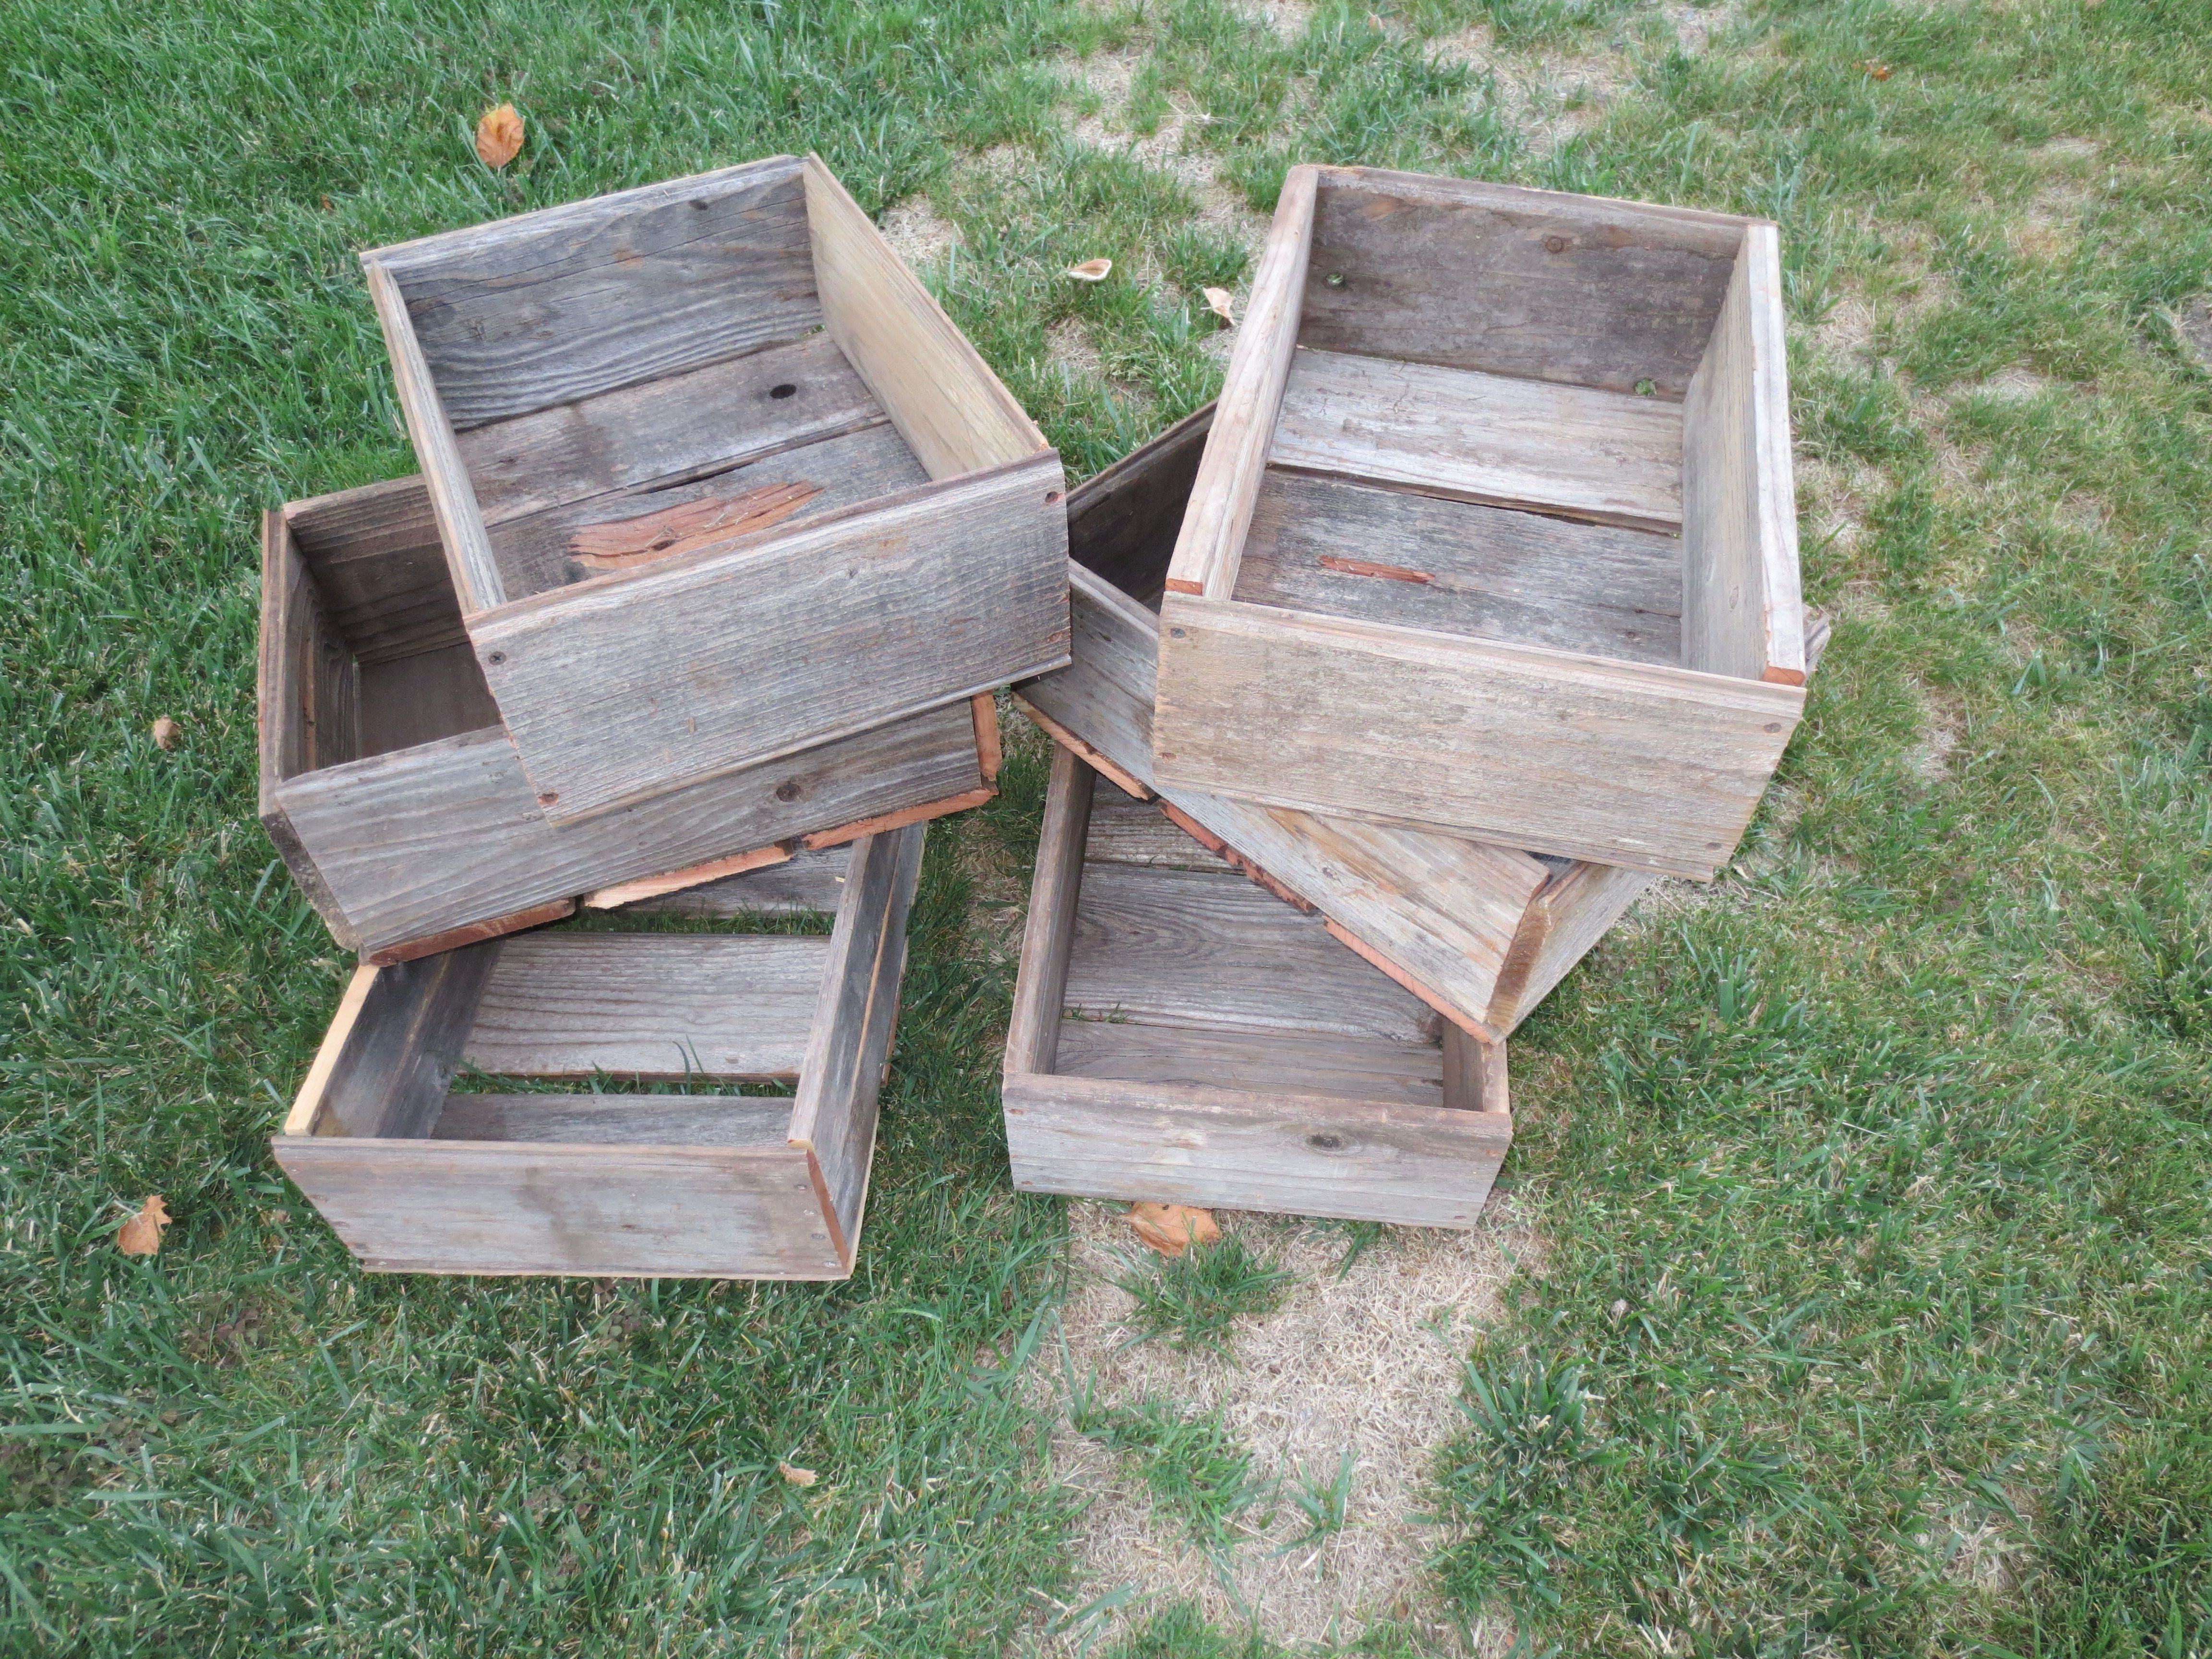 Fruit Boxes For The Fair Projects Made From Old Fence Boards